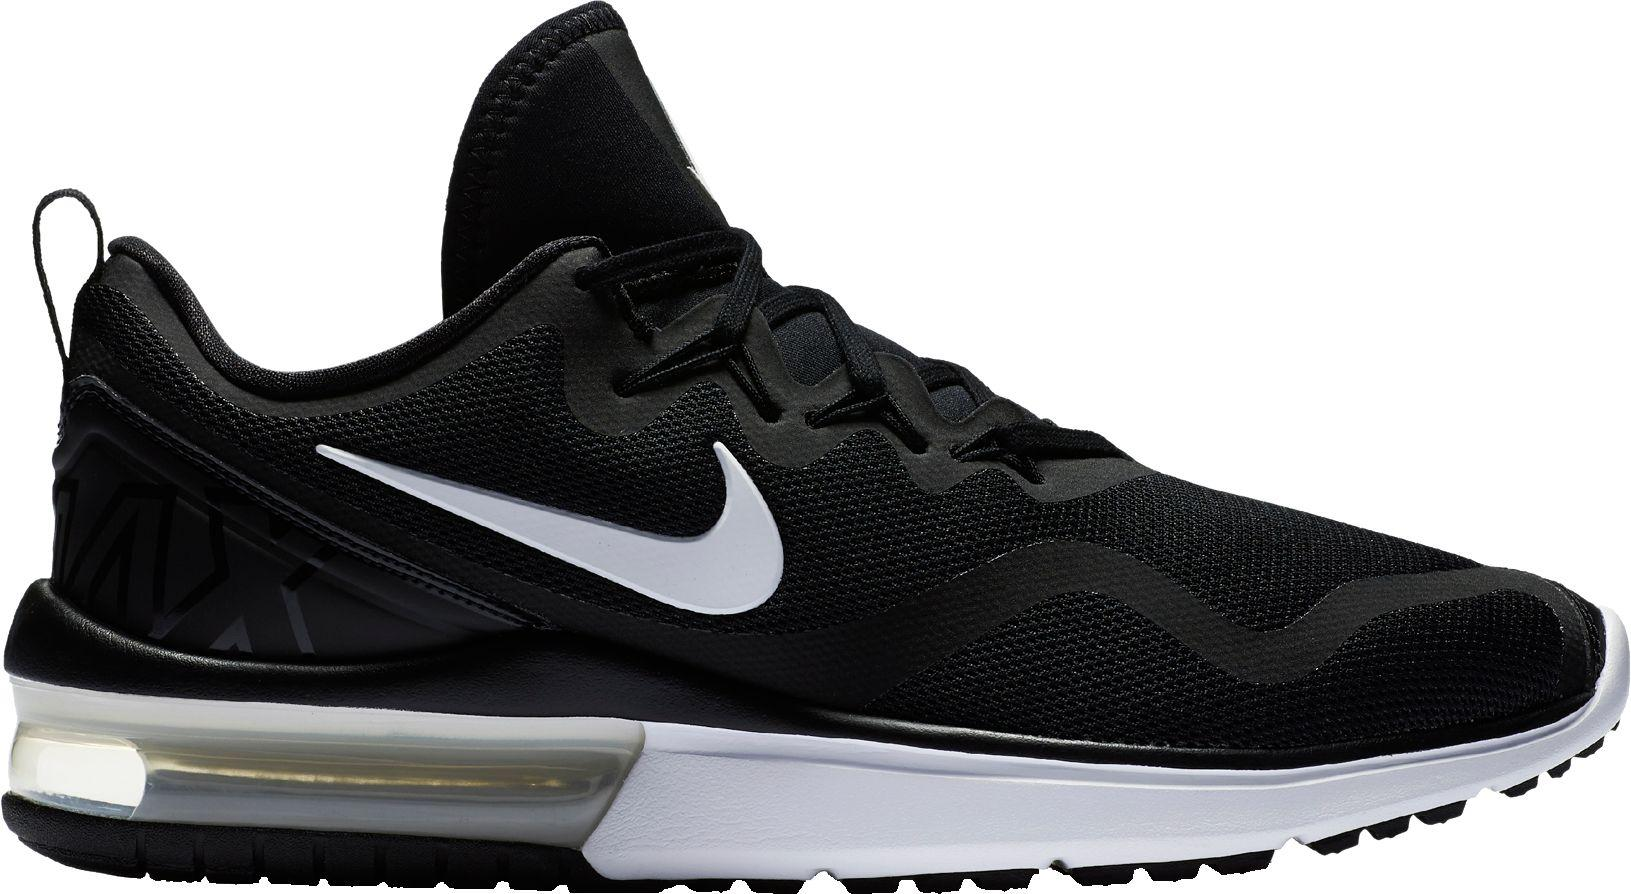 fdccec05cf7 Lyst - Nike Air Max Fury Running Shoes in Black for Men